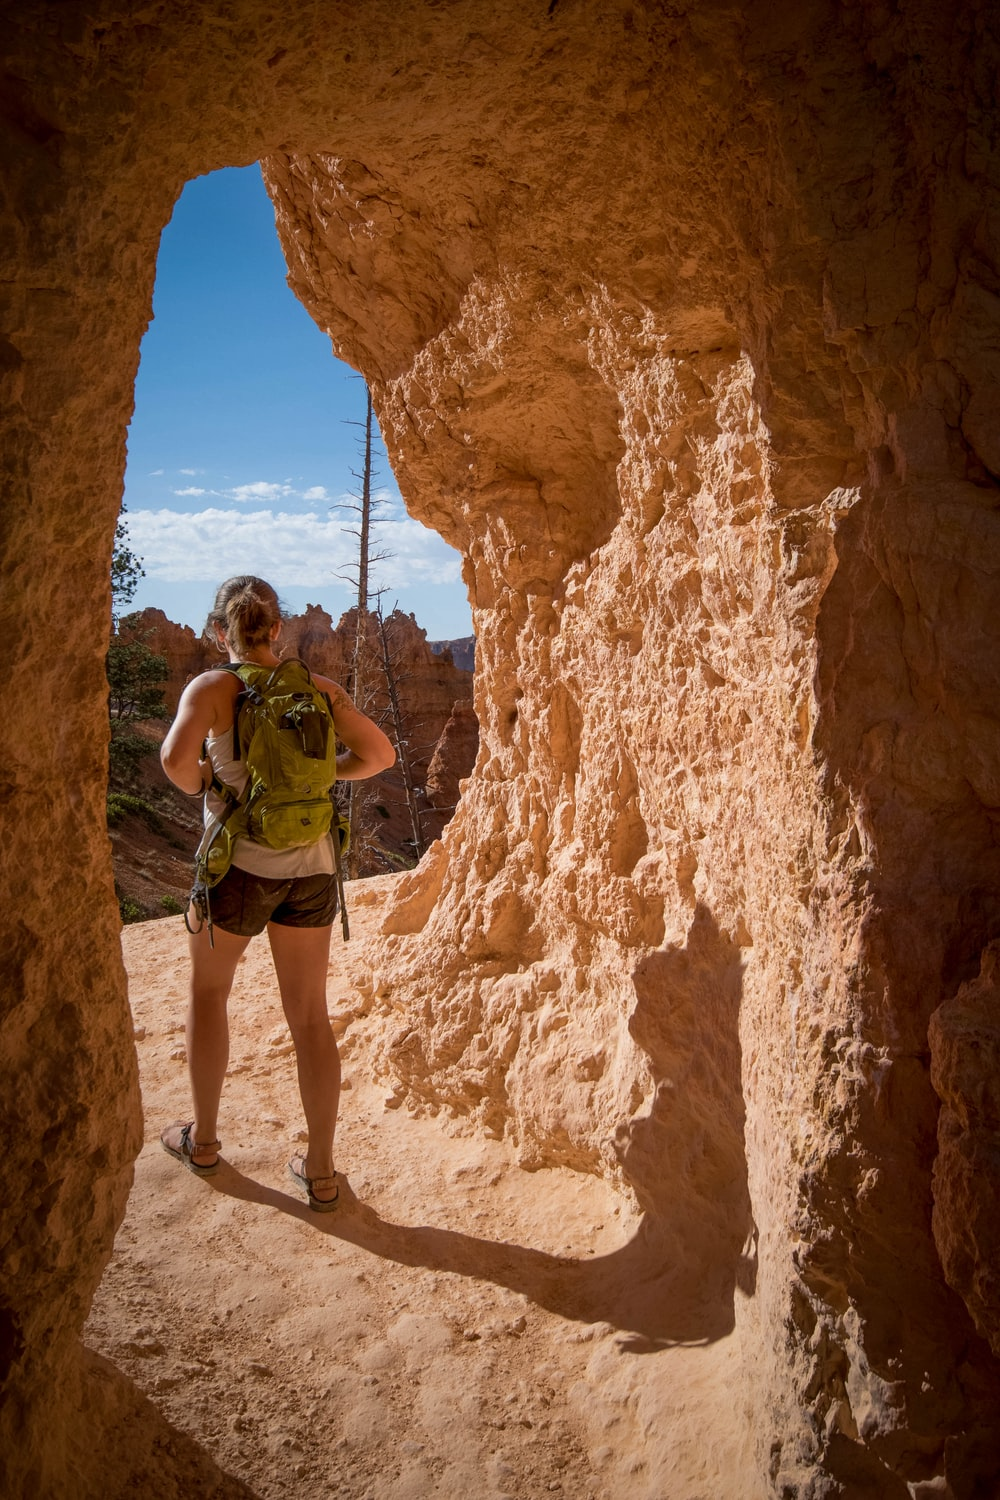 woman carrying backpack standing in cave passage